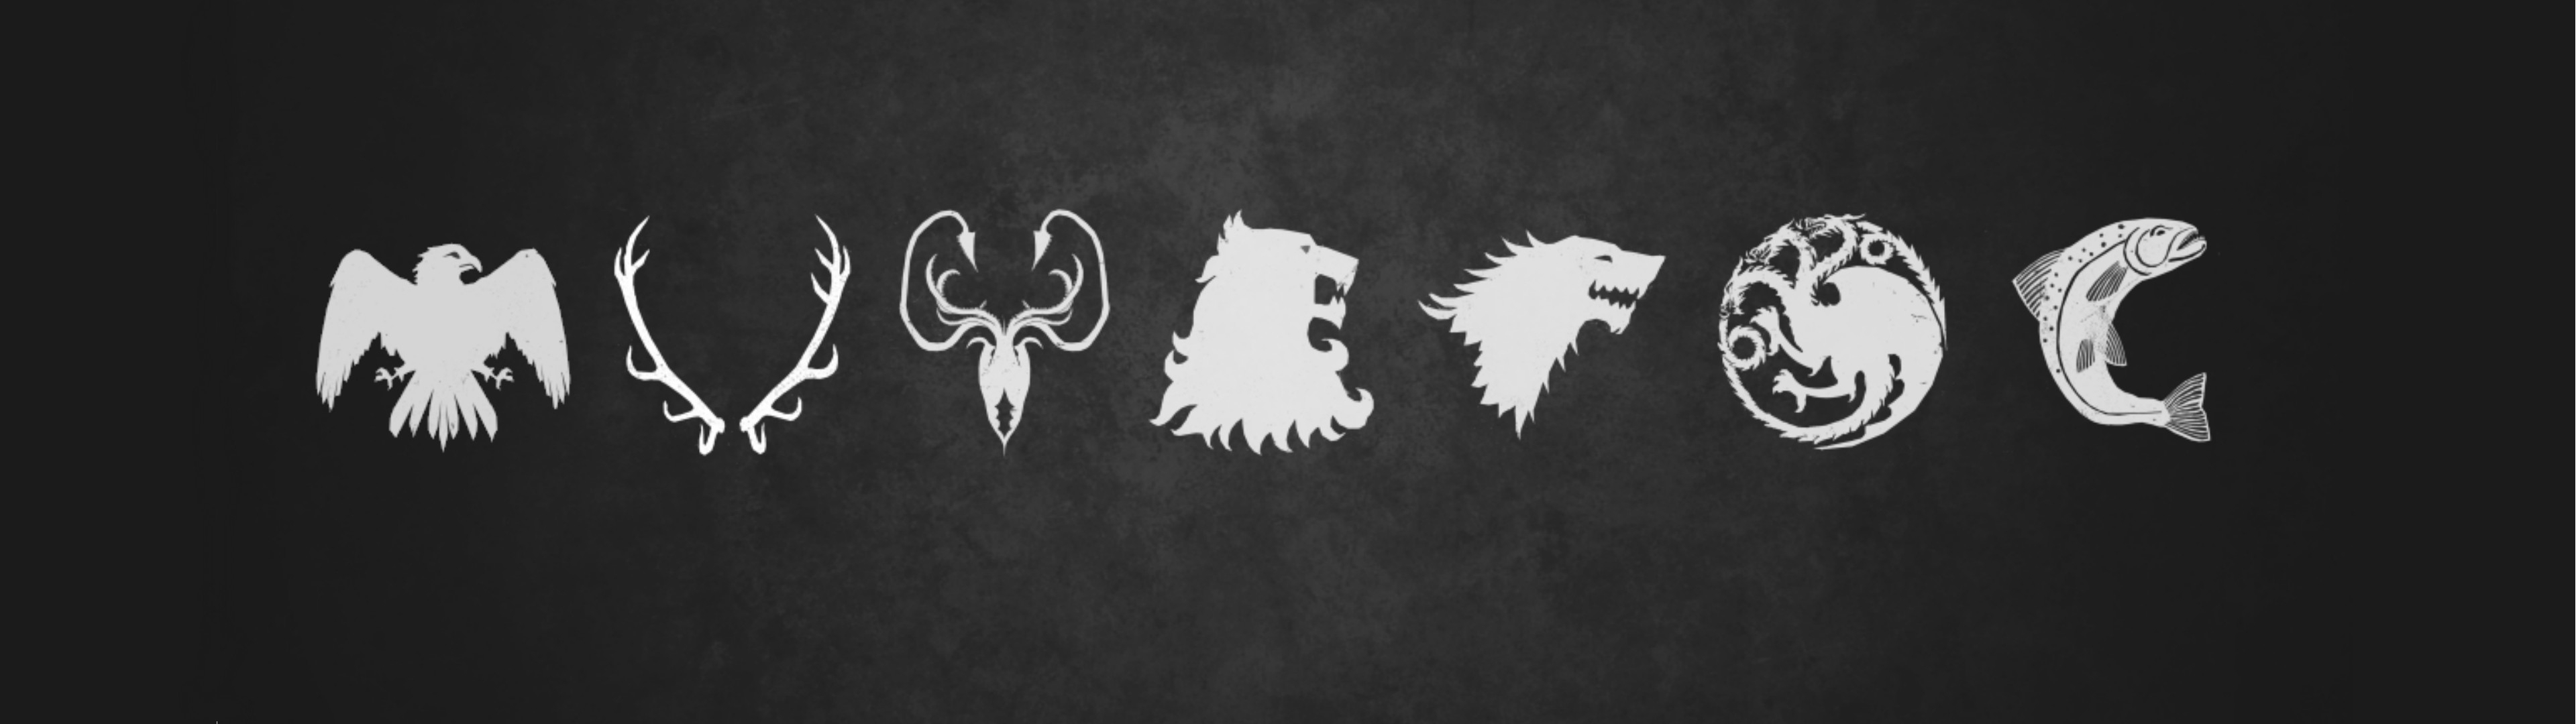 3840x1080] game of thrones : multiwall